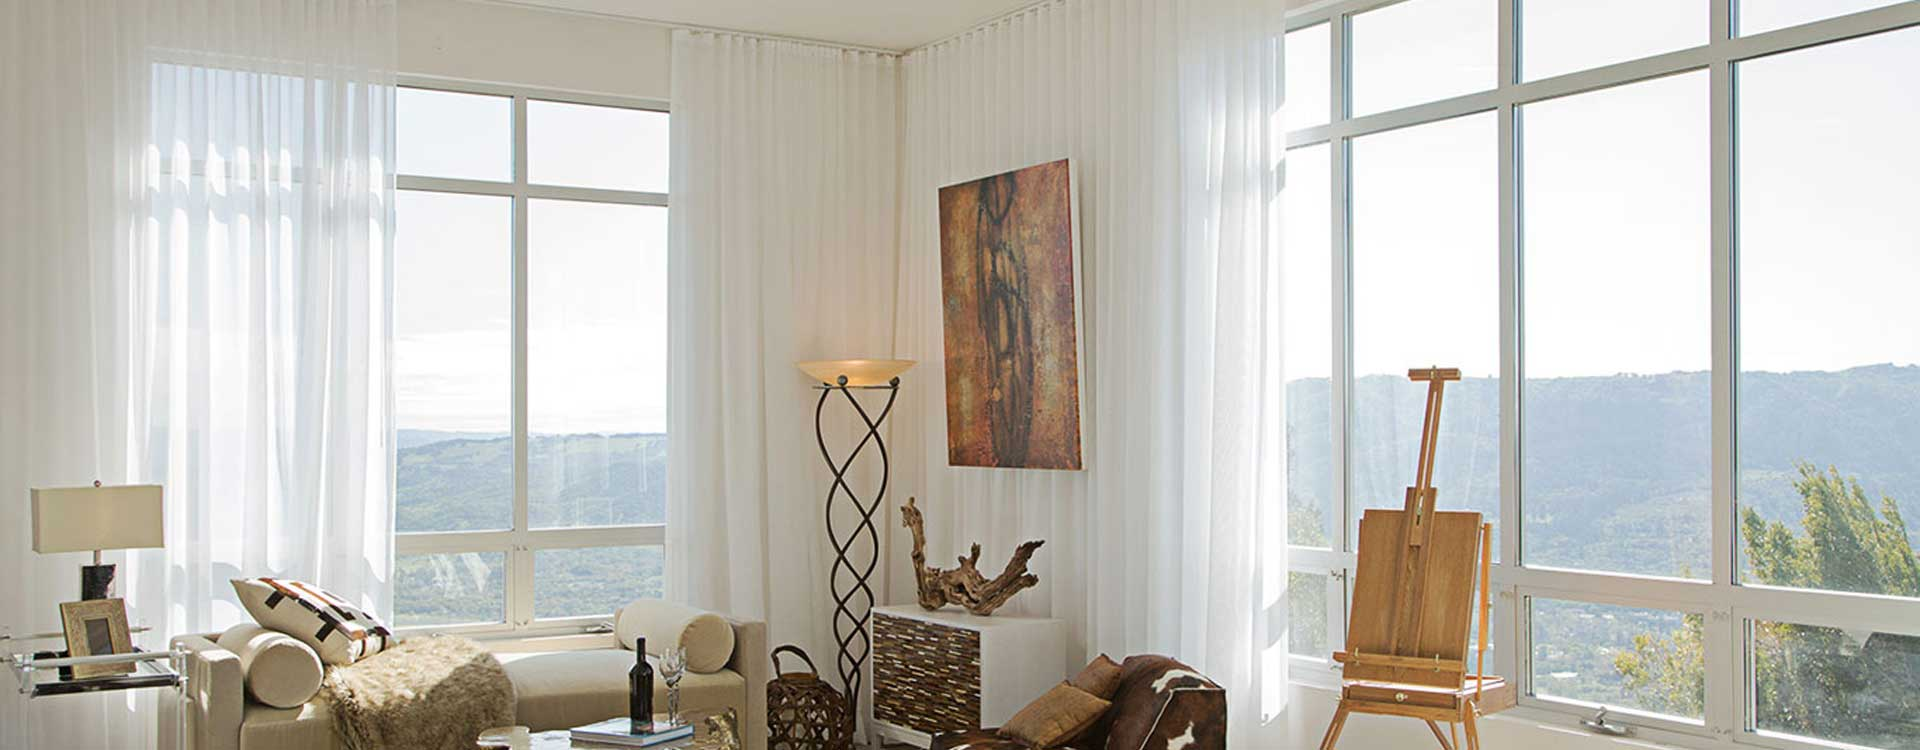 makeover to blog a window your drapes give with blinds product windows roman how shop review regal